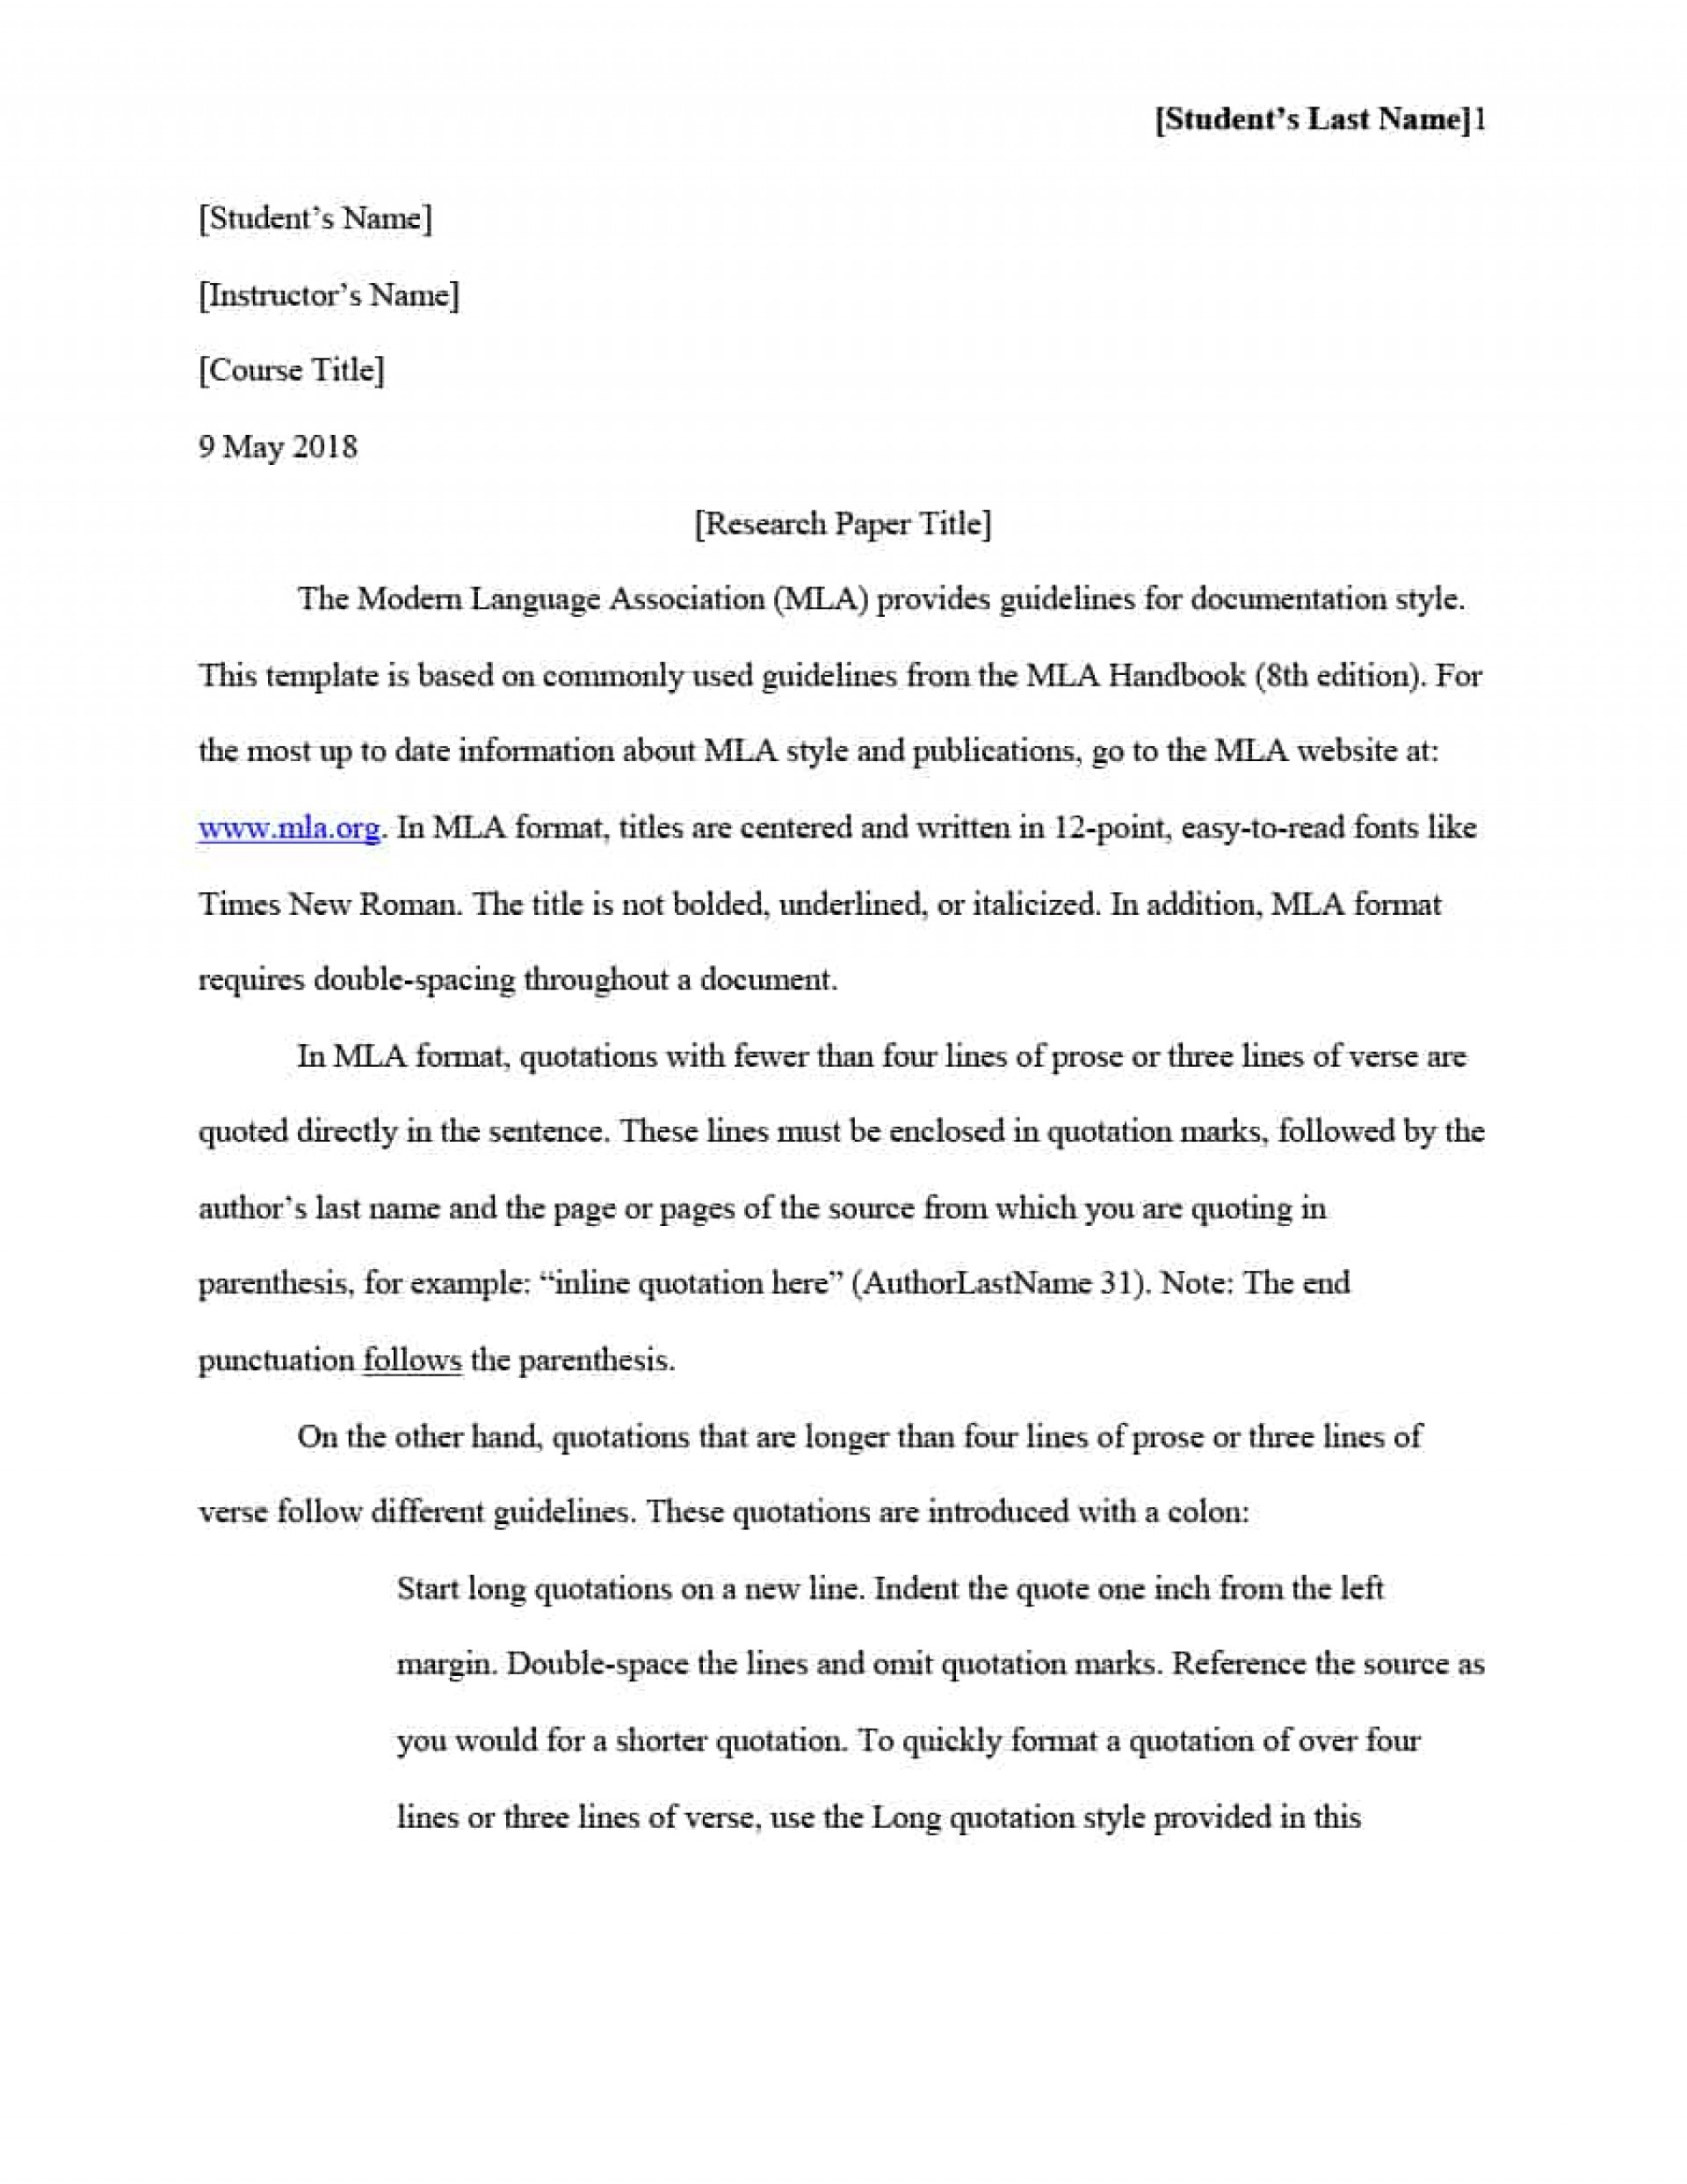 003 Research Paper Mla Style Format Template Fantastic Sample Owl Example 1920